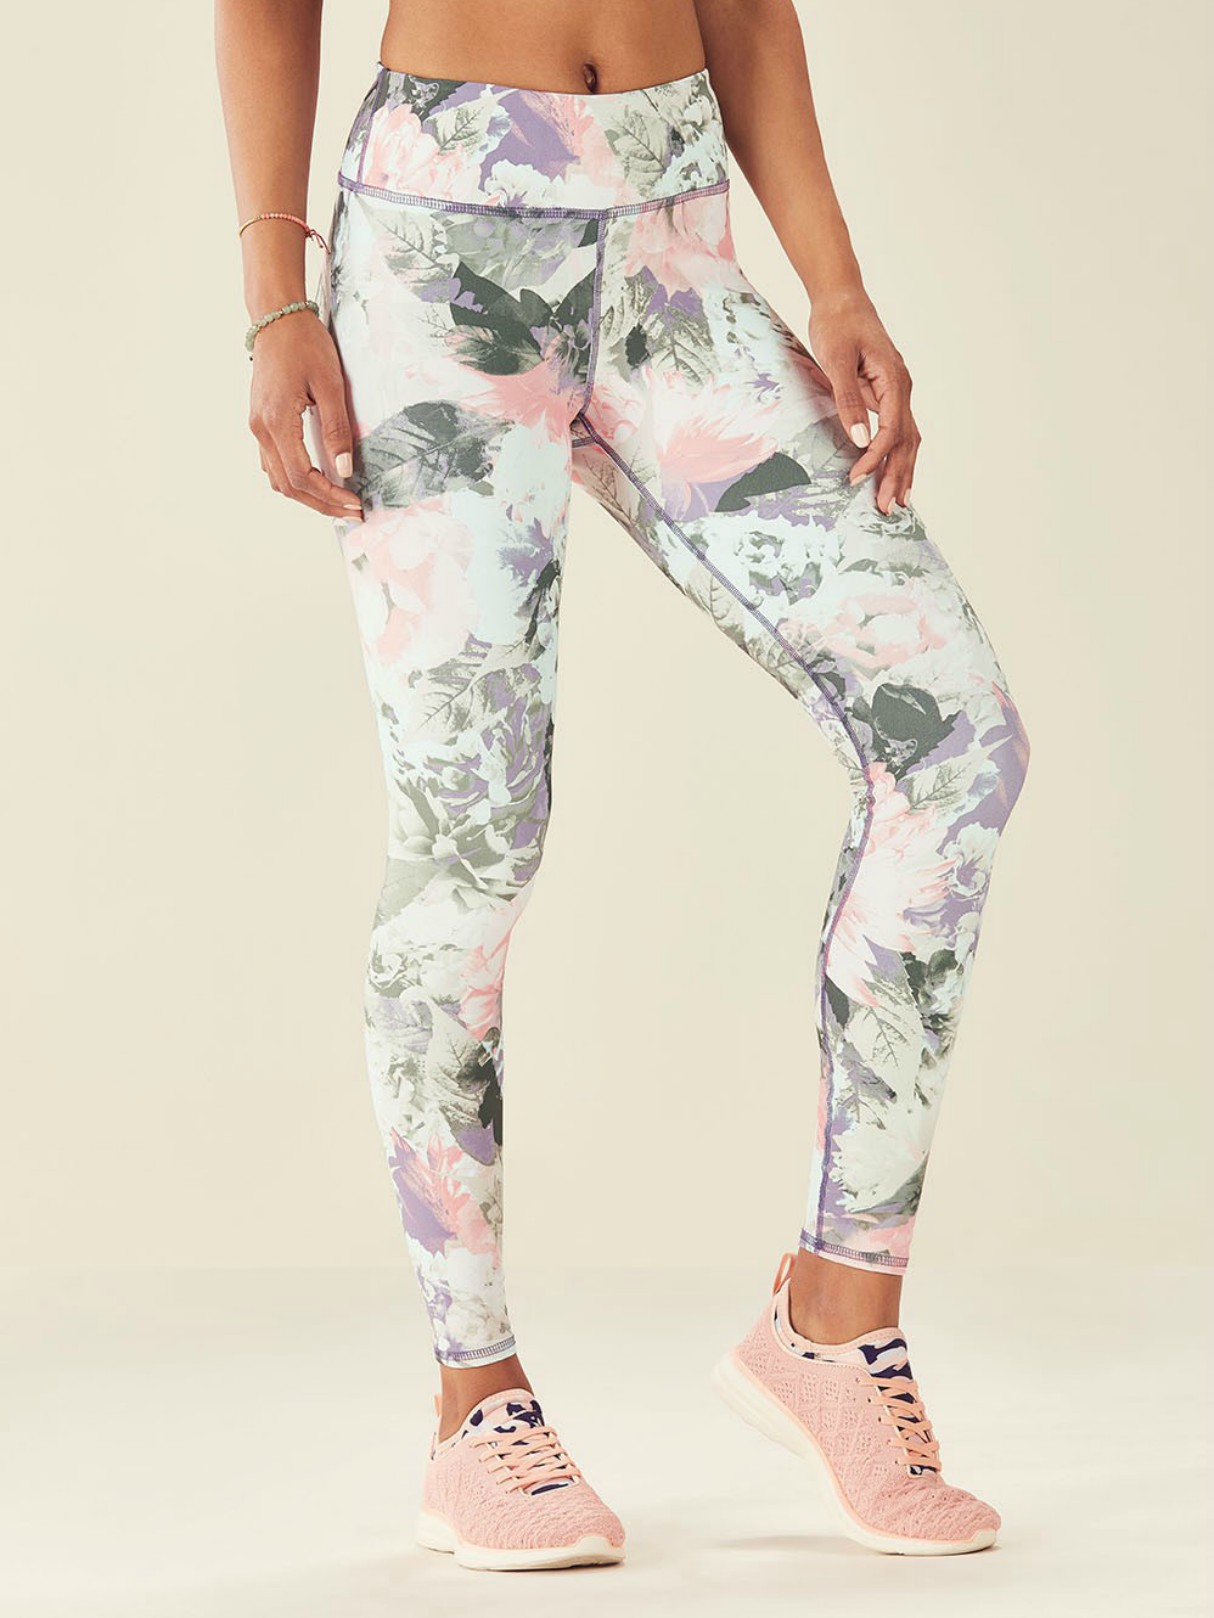 fitness-fashion-style-workout-fabletics-leggings